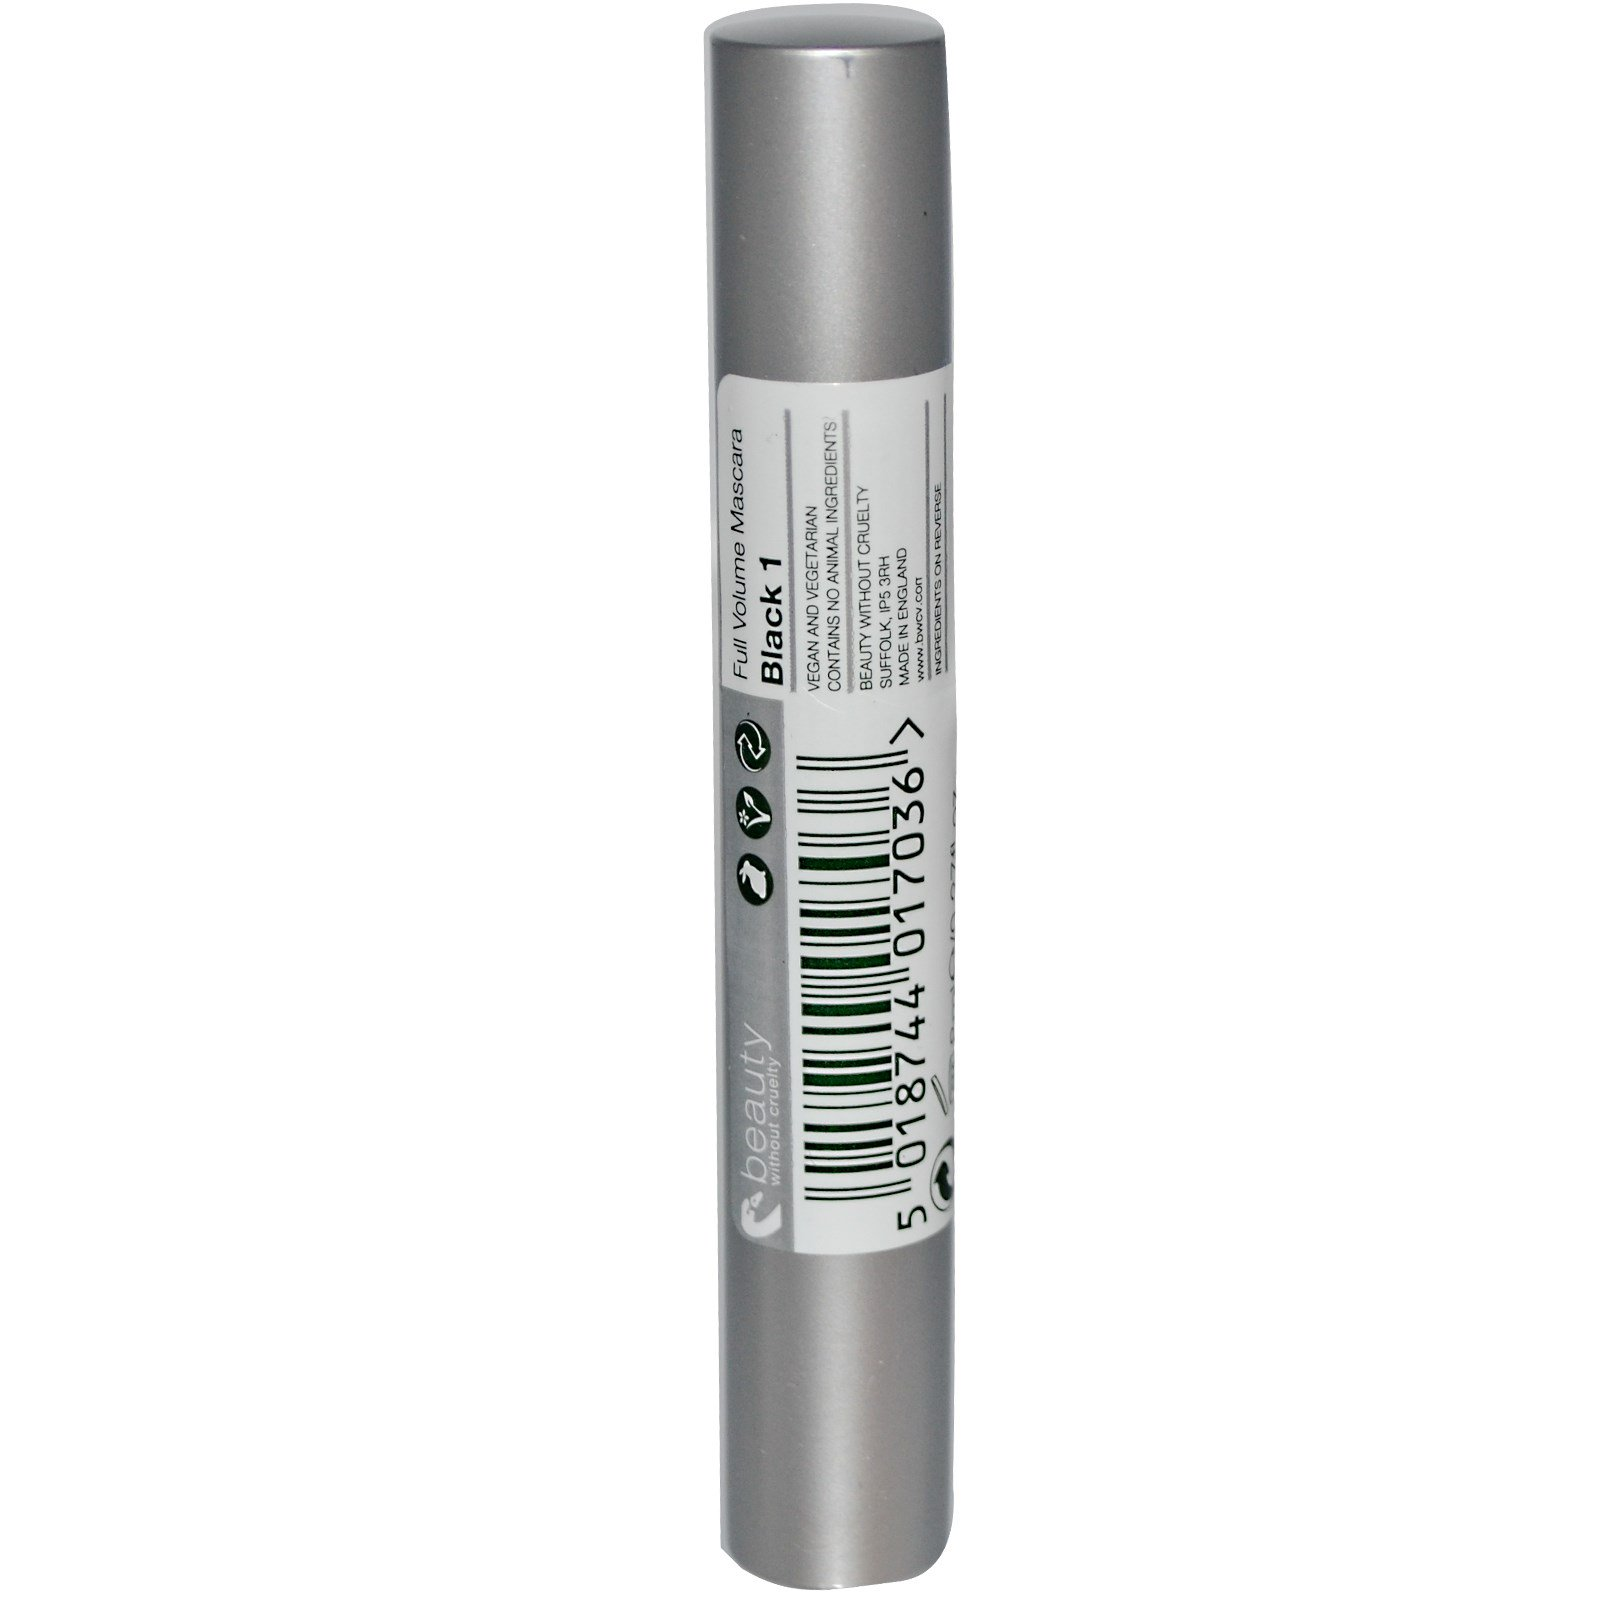 d7c344f1aa3 Beauty Without Cruelty, Full Volume Mascara, Black 1, 0.27 fl oz (8 ml)  (Discontinued Item)